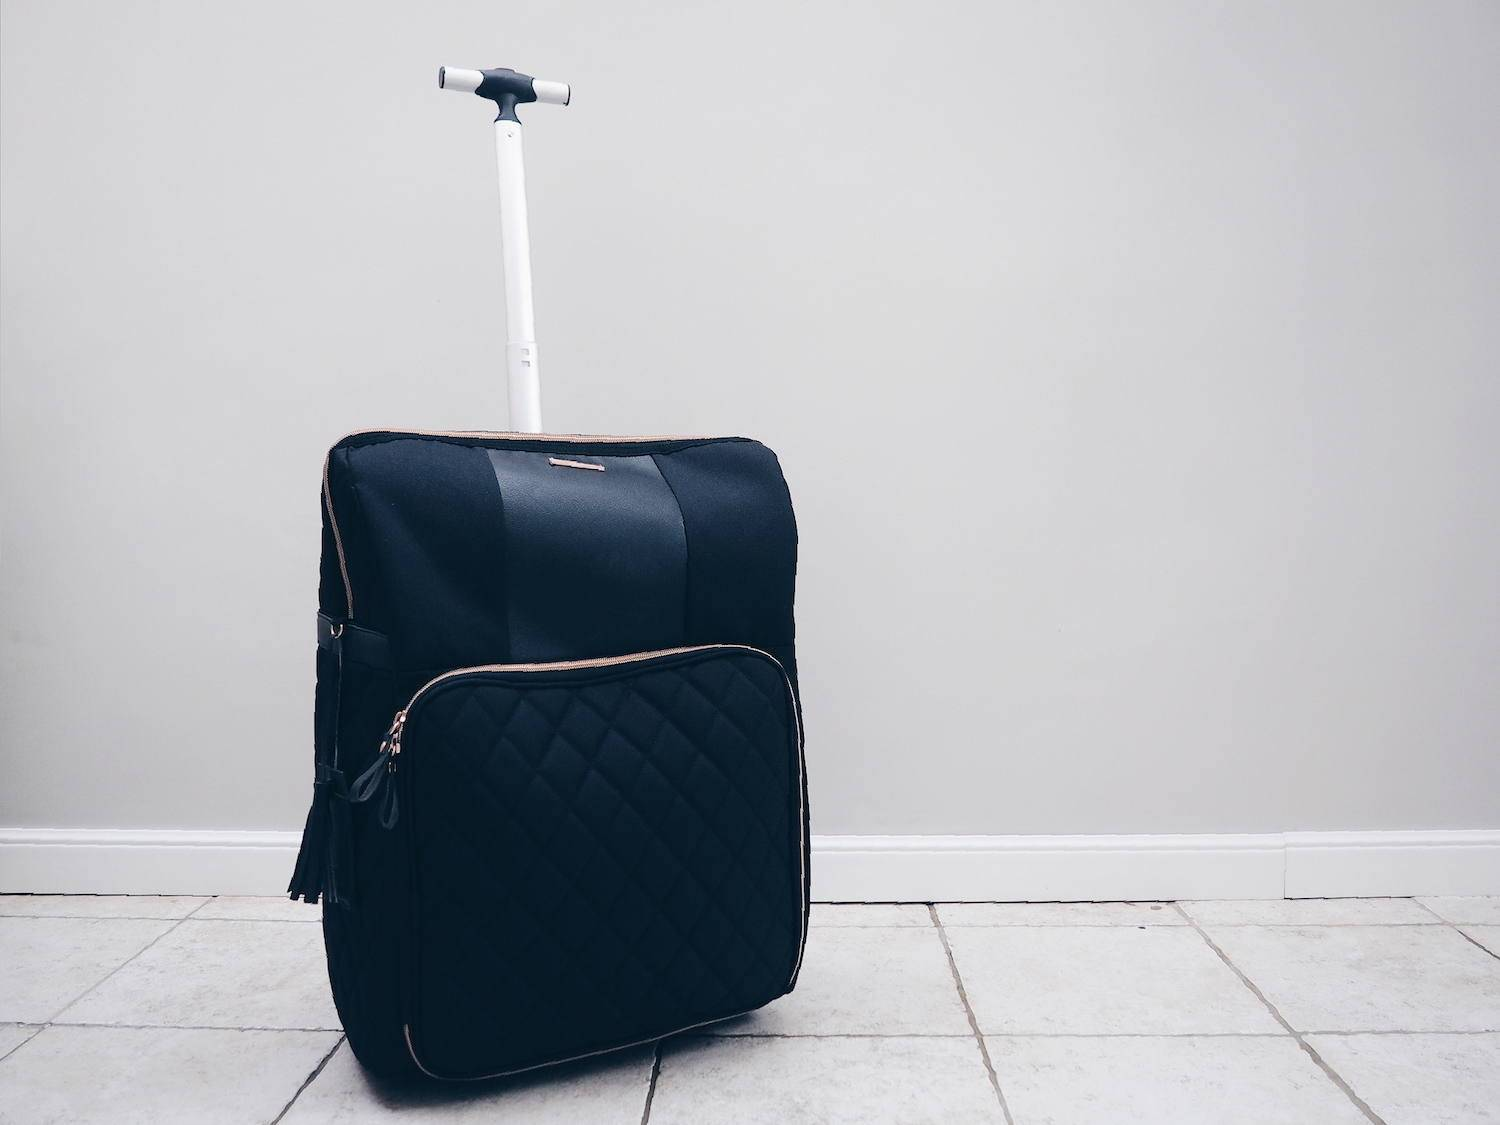 Cabin Max Travel Hack Pro Rose Gold Cabin Bag: traveller review